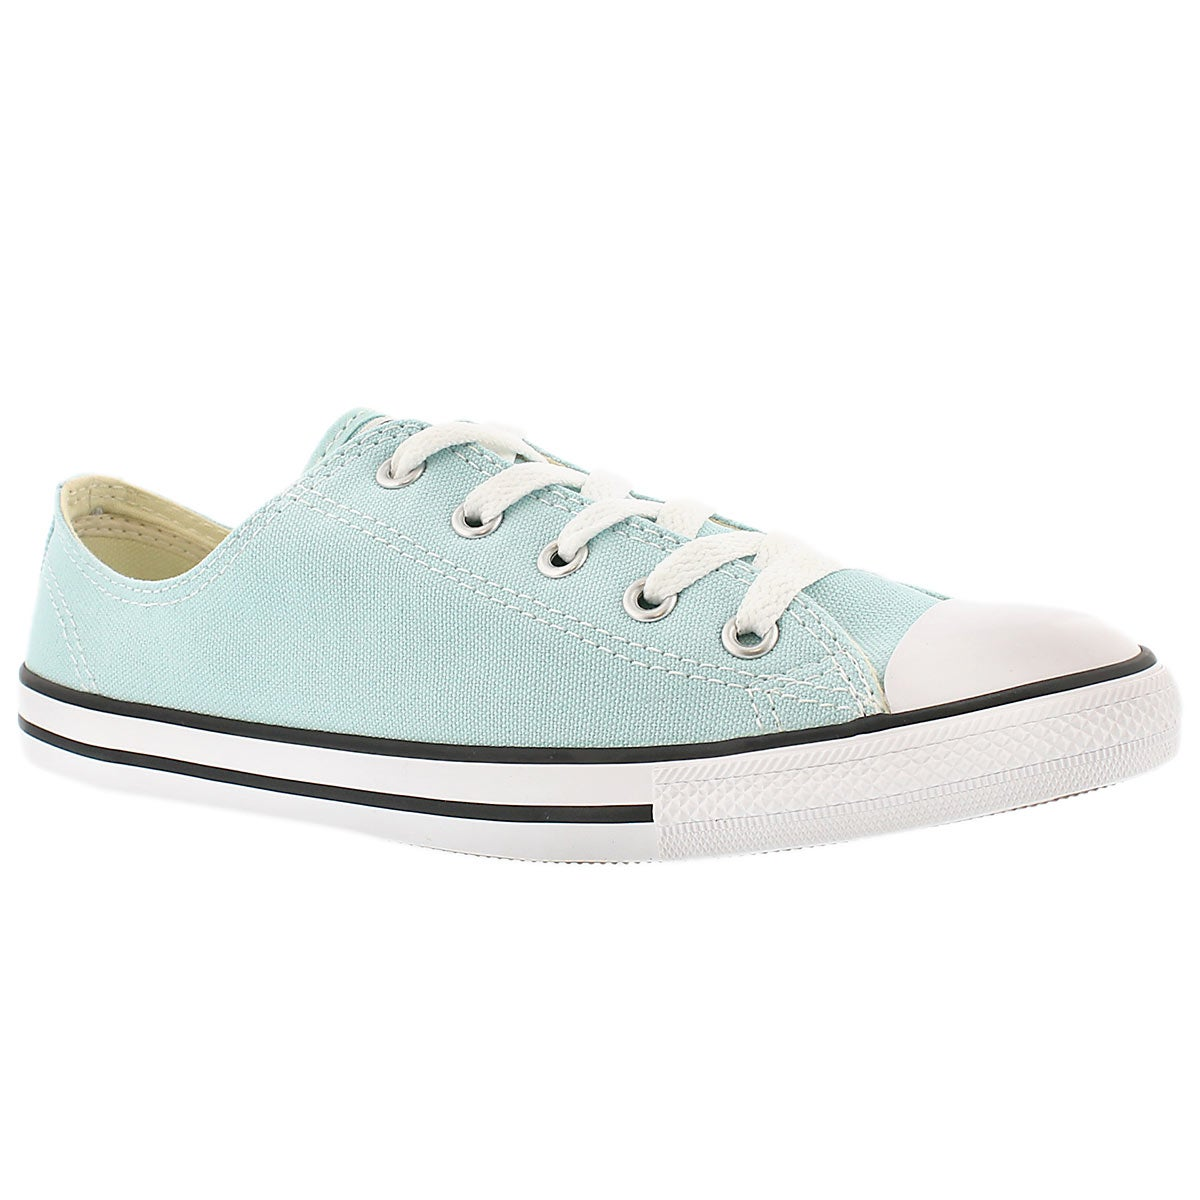 Lds CT AllStar Dainty Canvas blue oxford